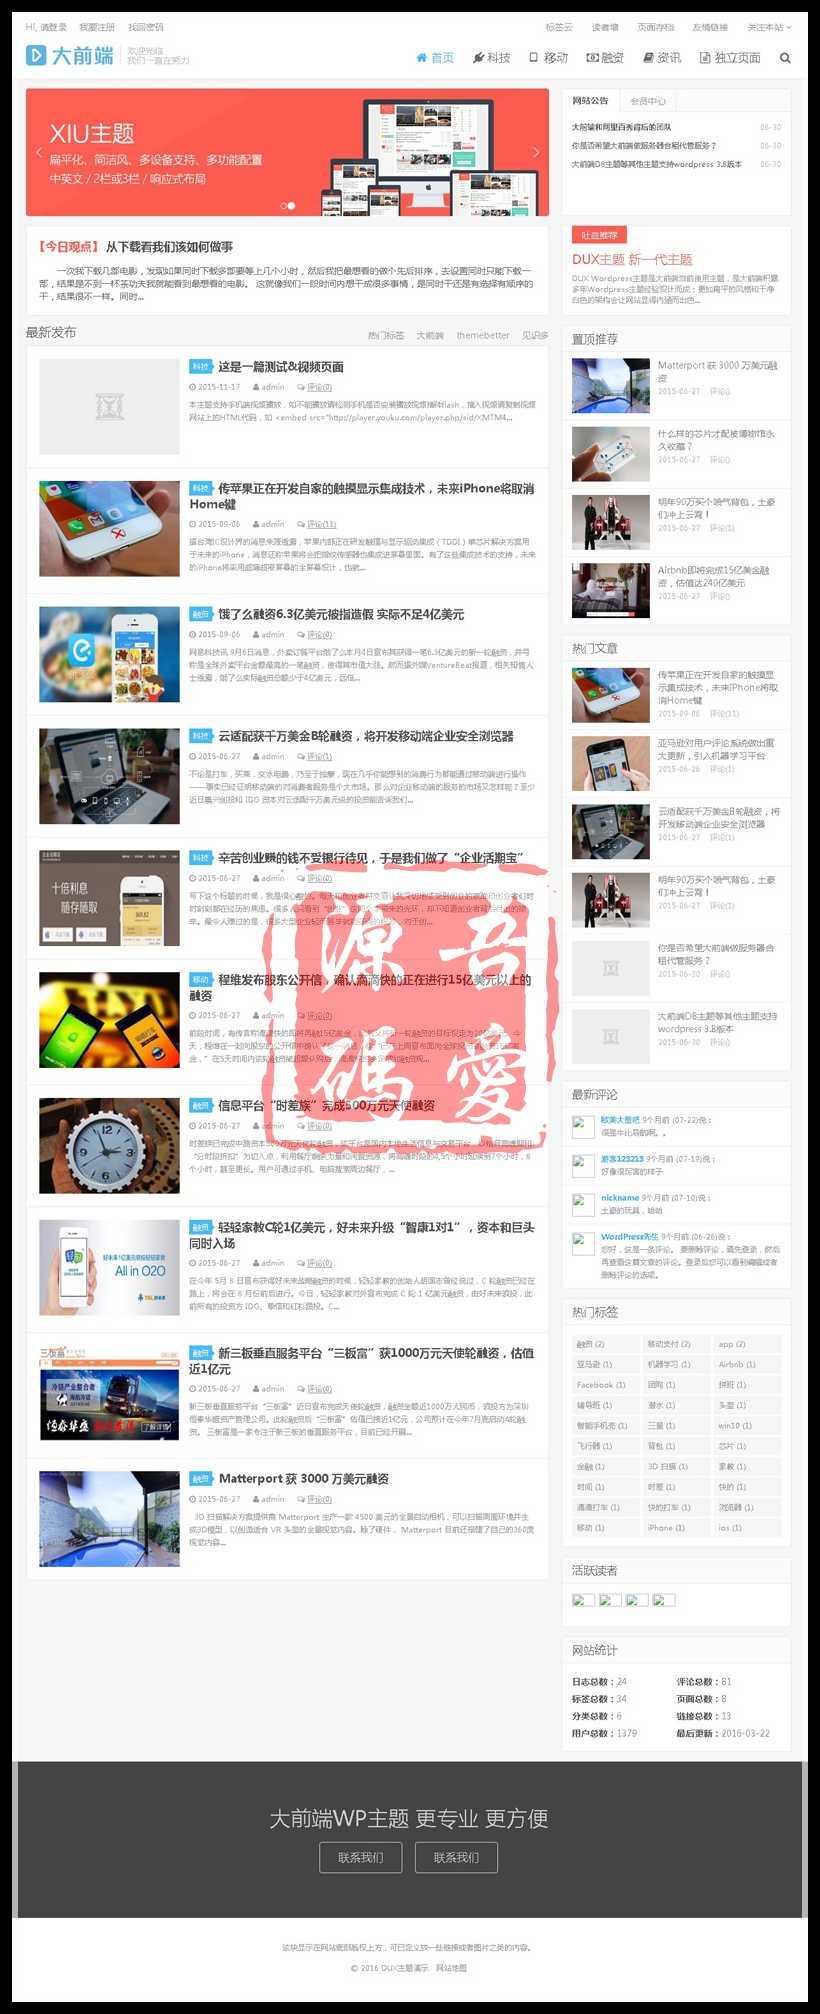 WordPress主題模板大前端DUX主題1.3版本下載,WordPress博客企業主題免費分享